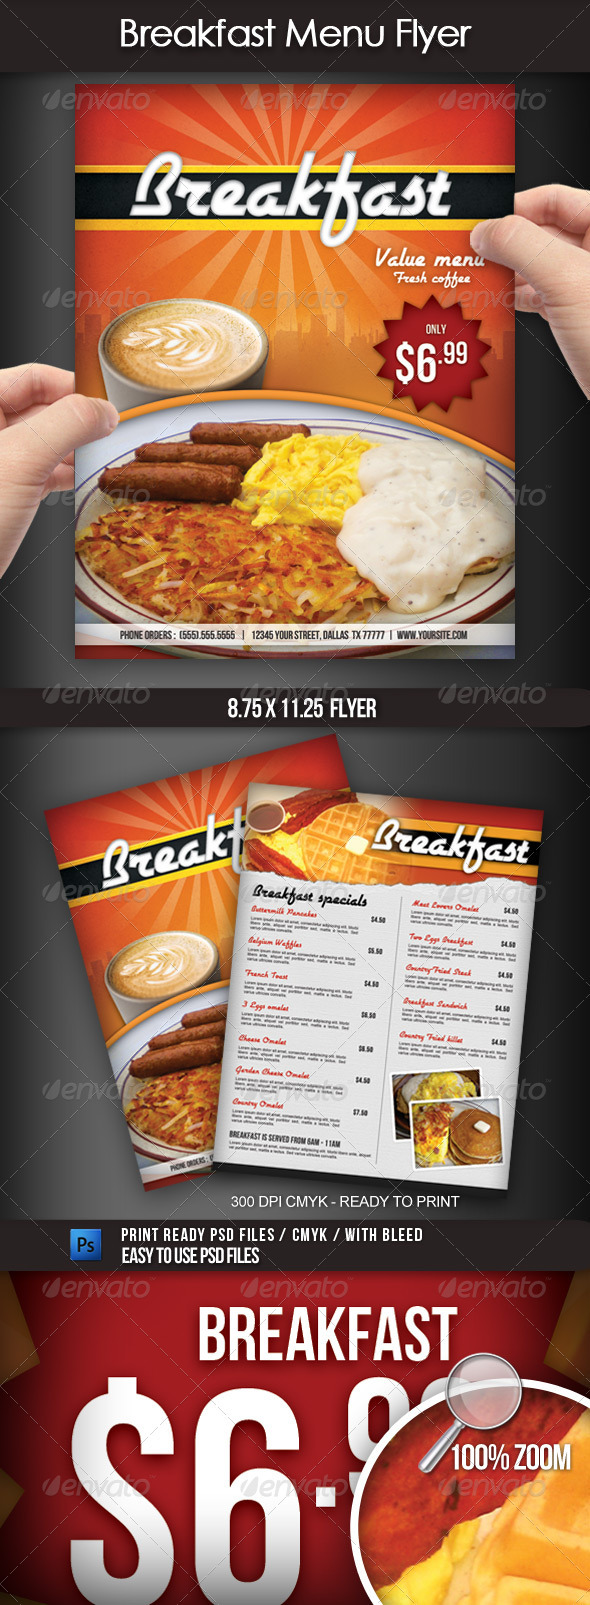 Breakfast Menu Flyer - Restaurant Flyers